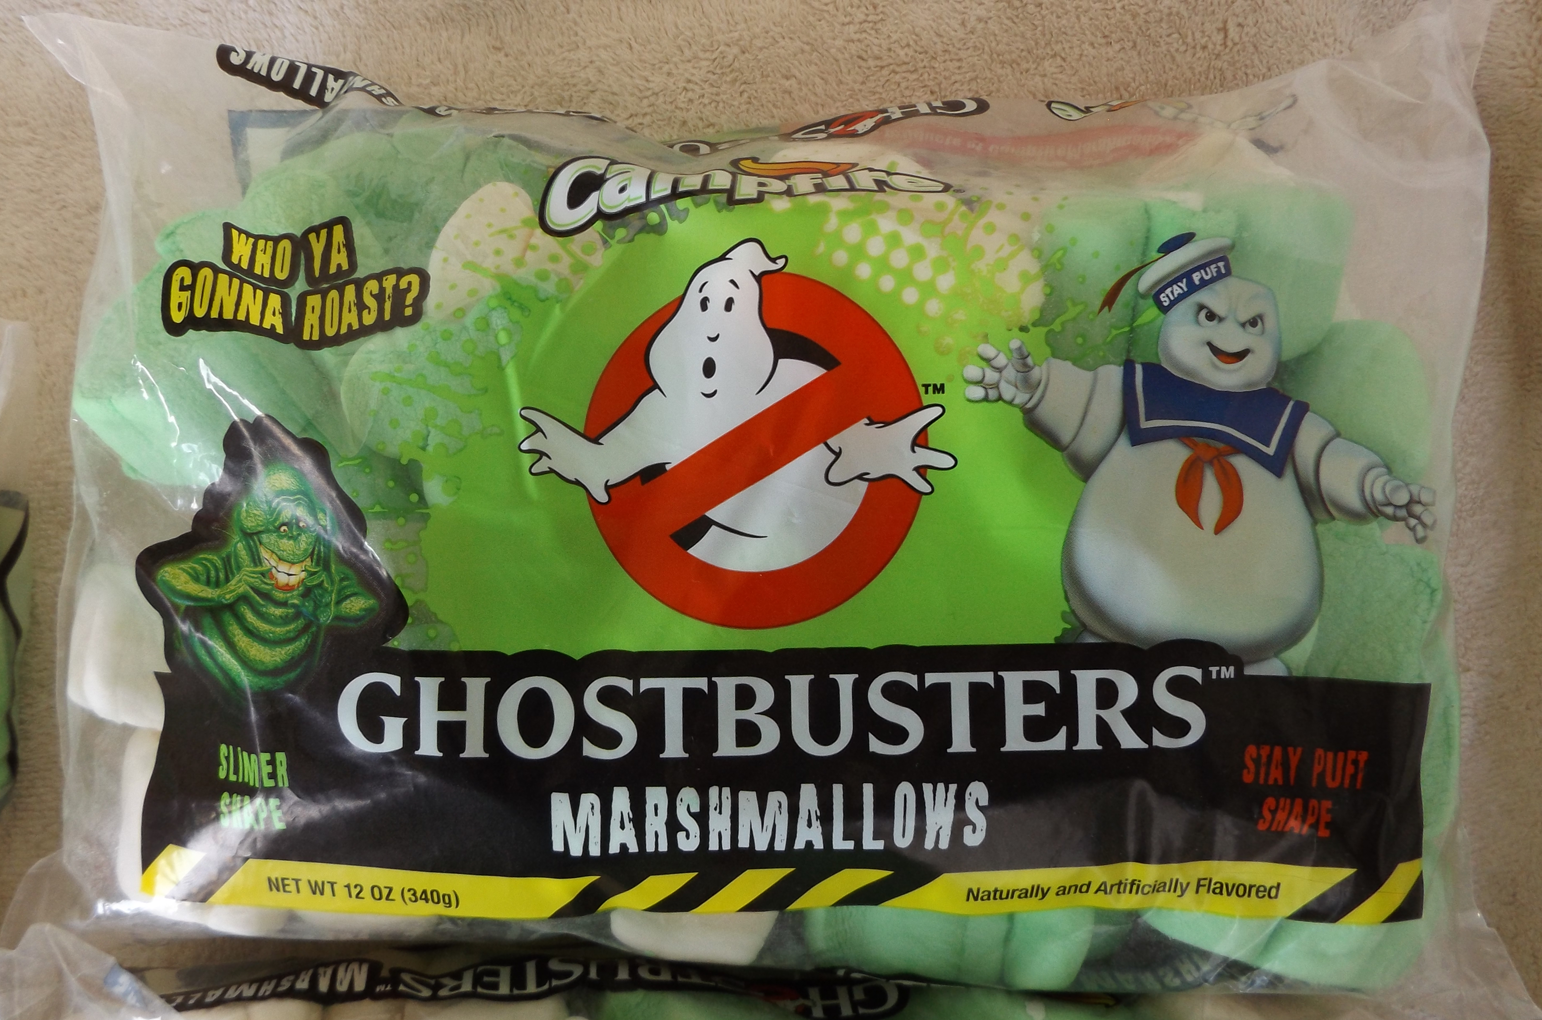 Ghostbusters Marshmallows (by Campfire/Rocky Mountain)